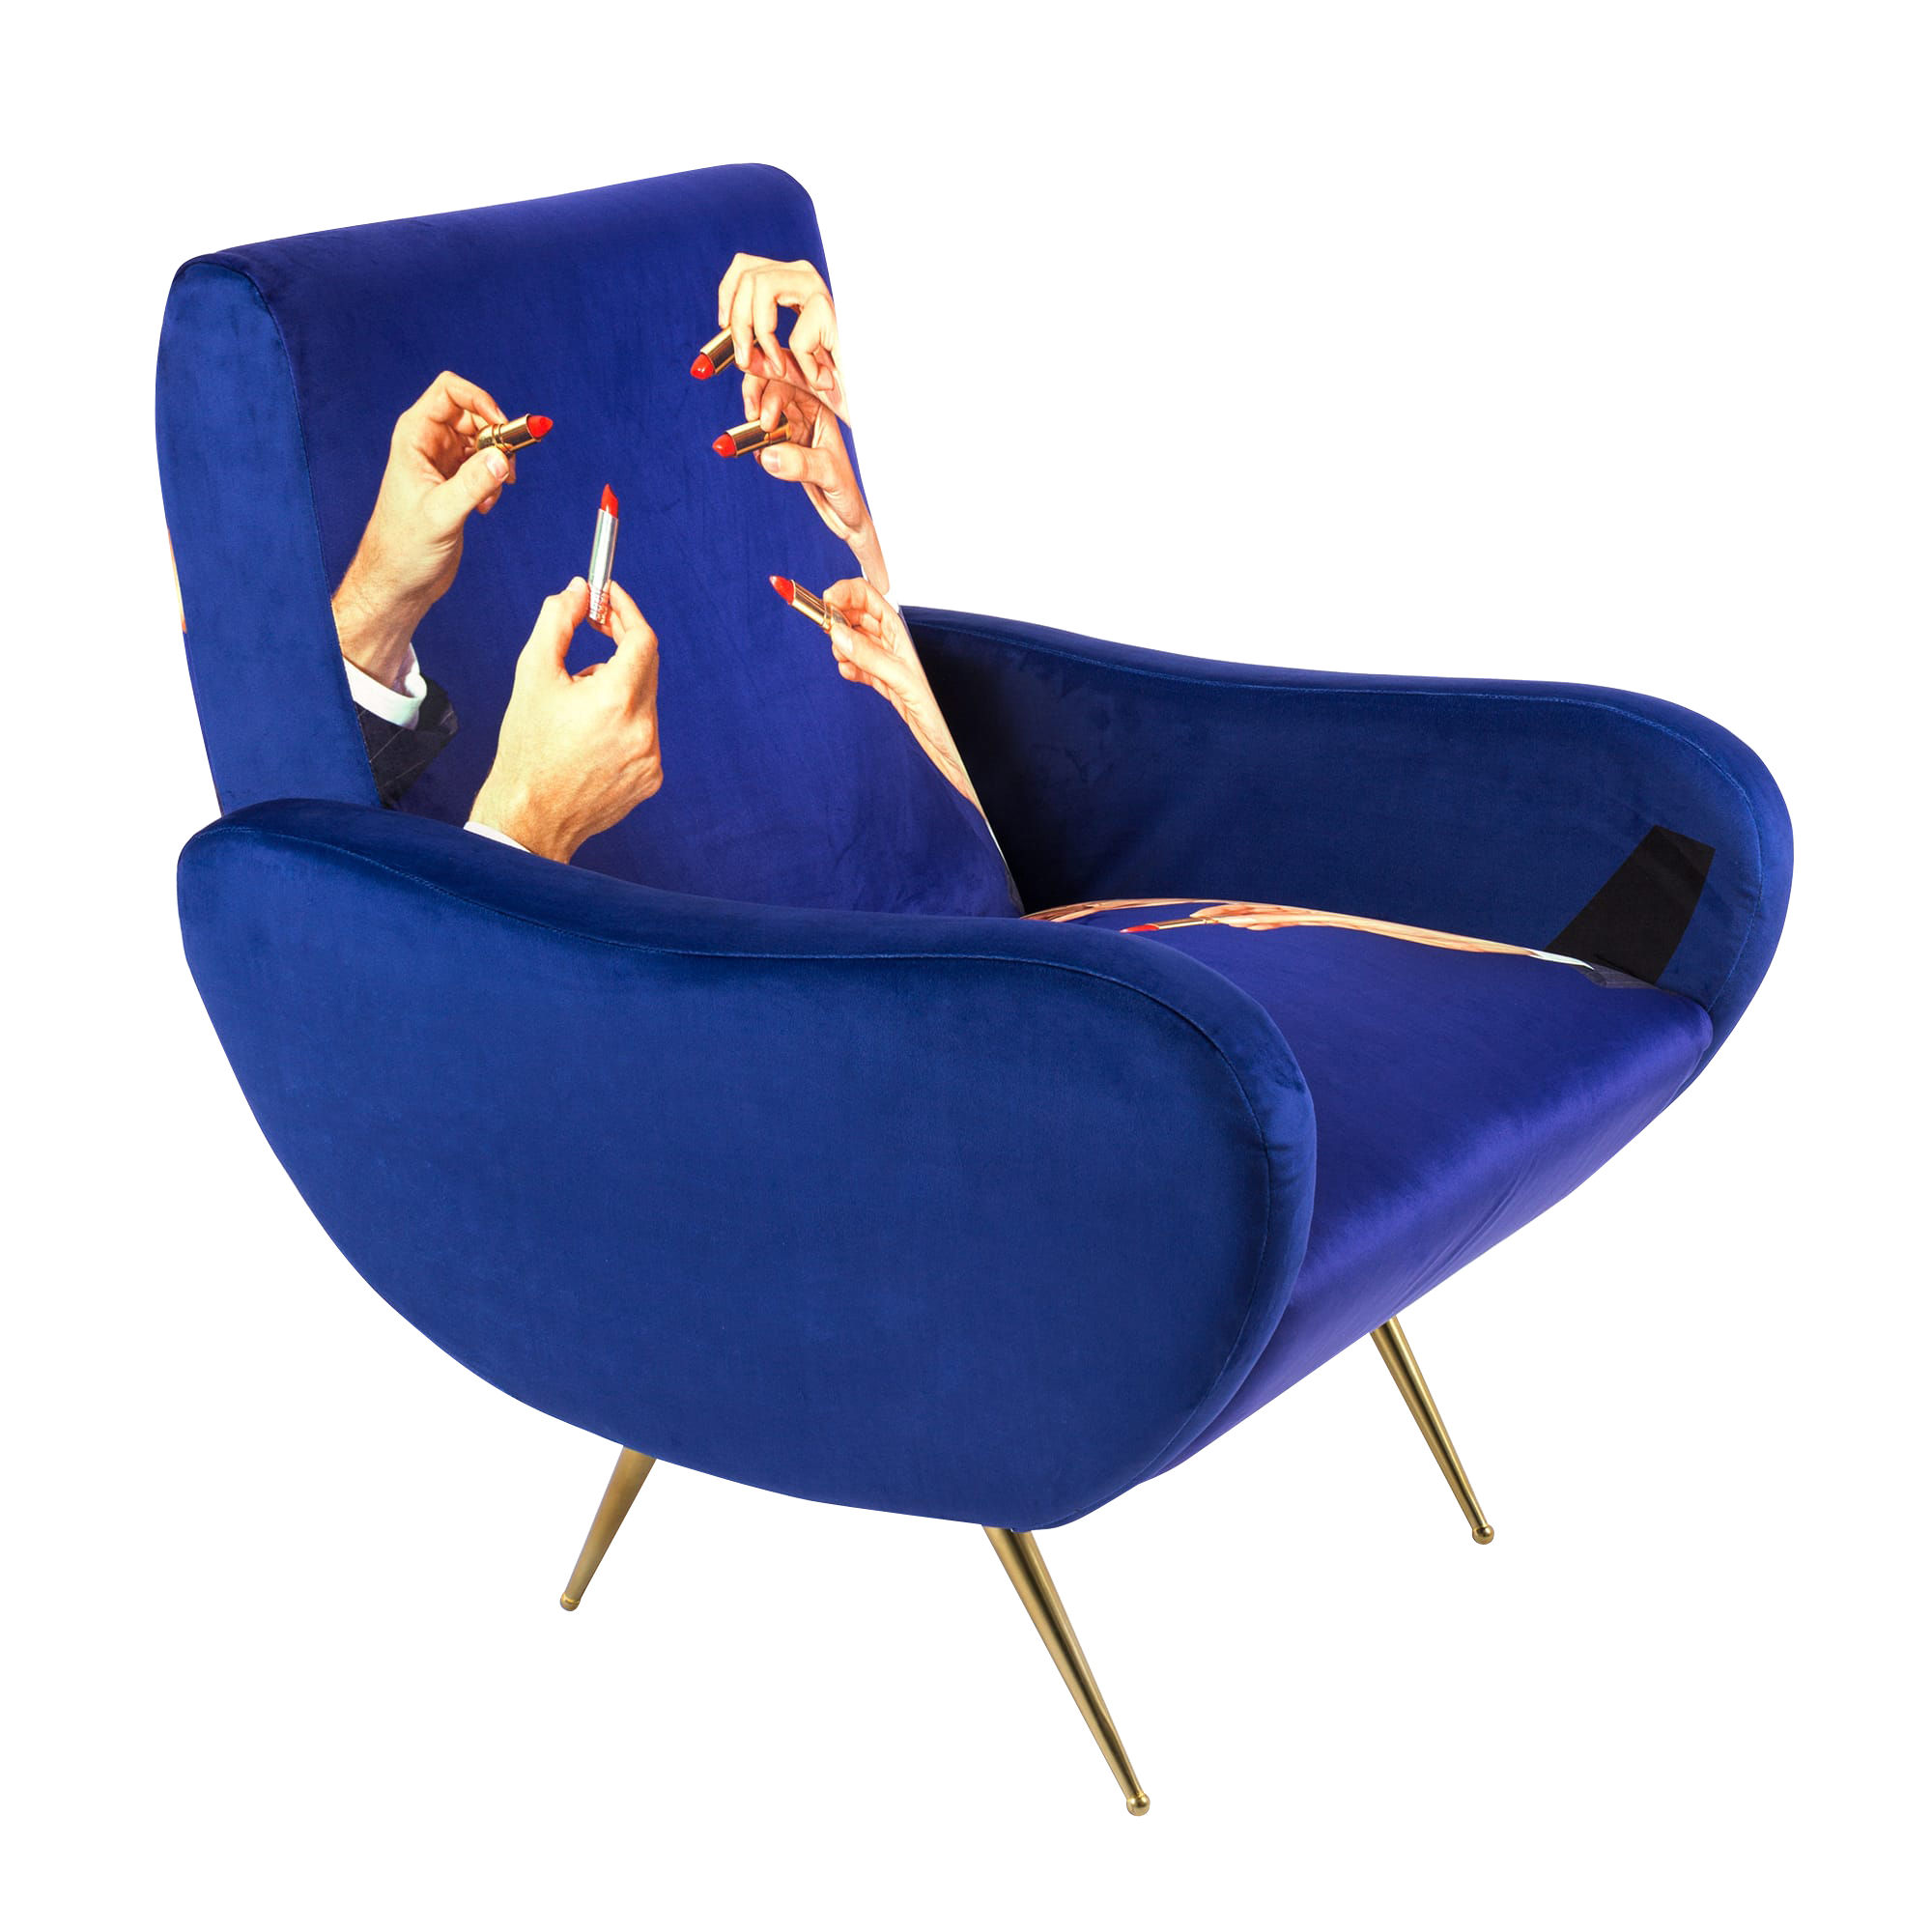 Furniture - Armchairs - Toiletpaper Padded armchair by Seletti - Blue / Lipstick pattern - Metal, Polyester fabric, Polyurethane foam, Wood